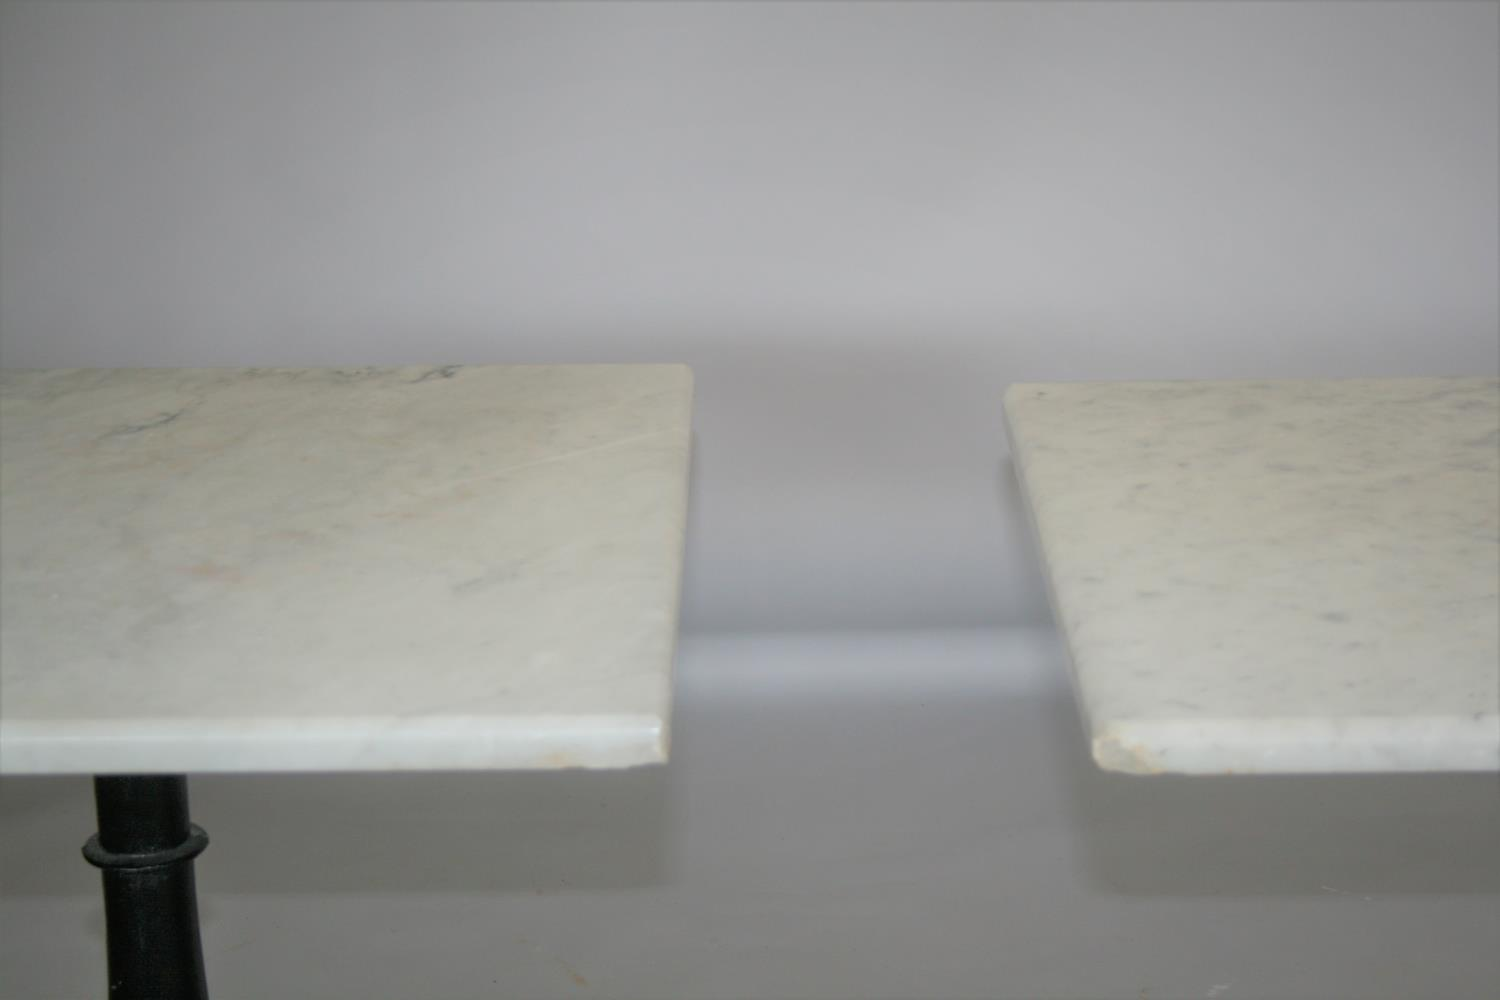 Two quality marble top bar tables (slight damage to marble and slight variation in size) 70 W x 70 H - Image 2 of 3